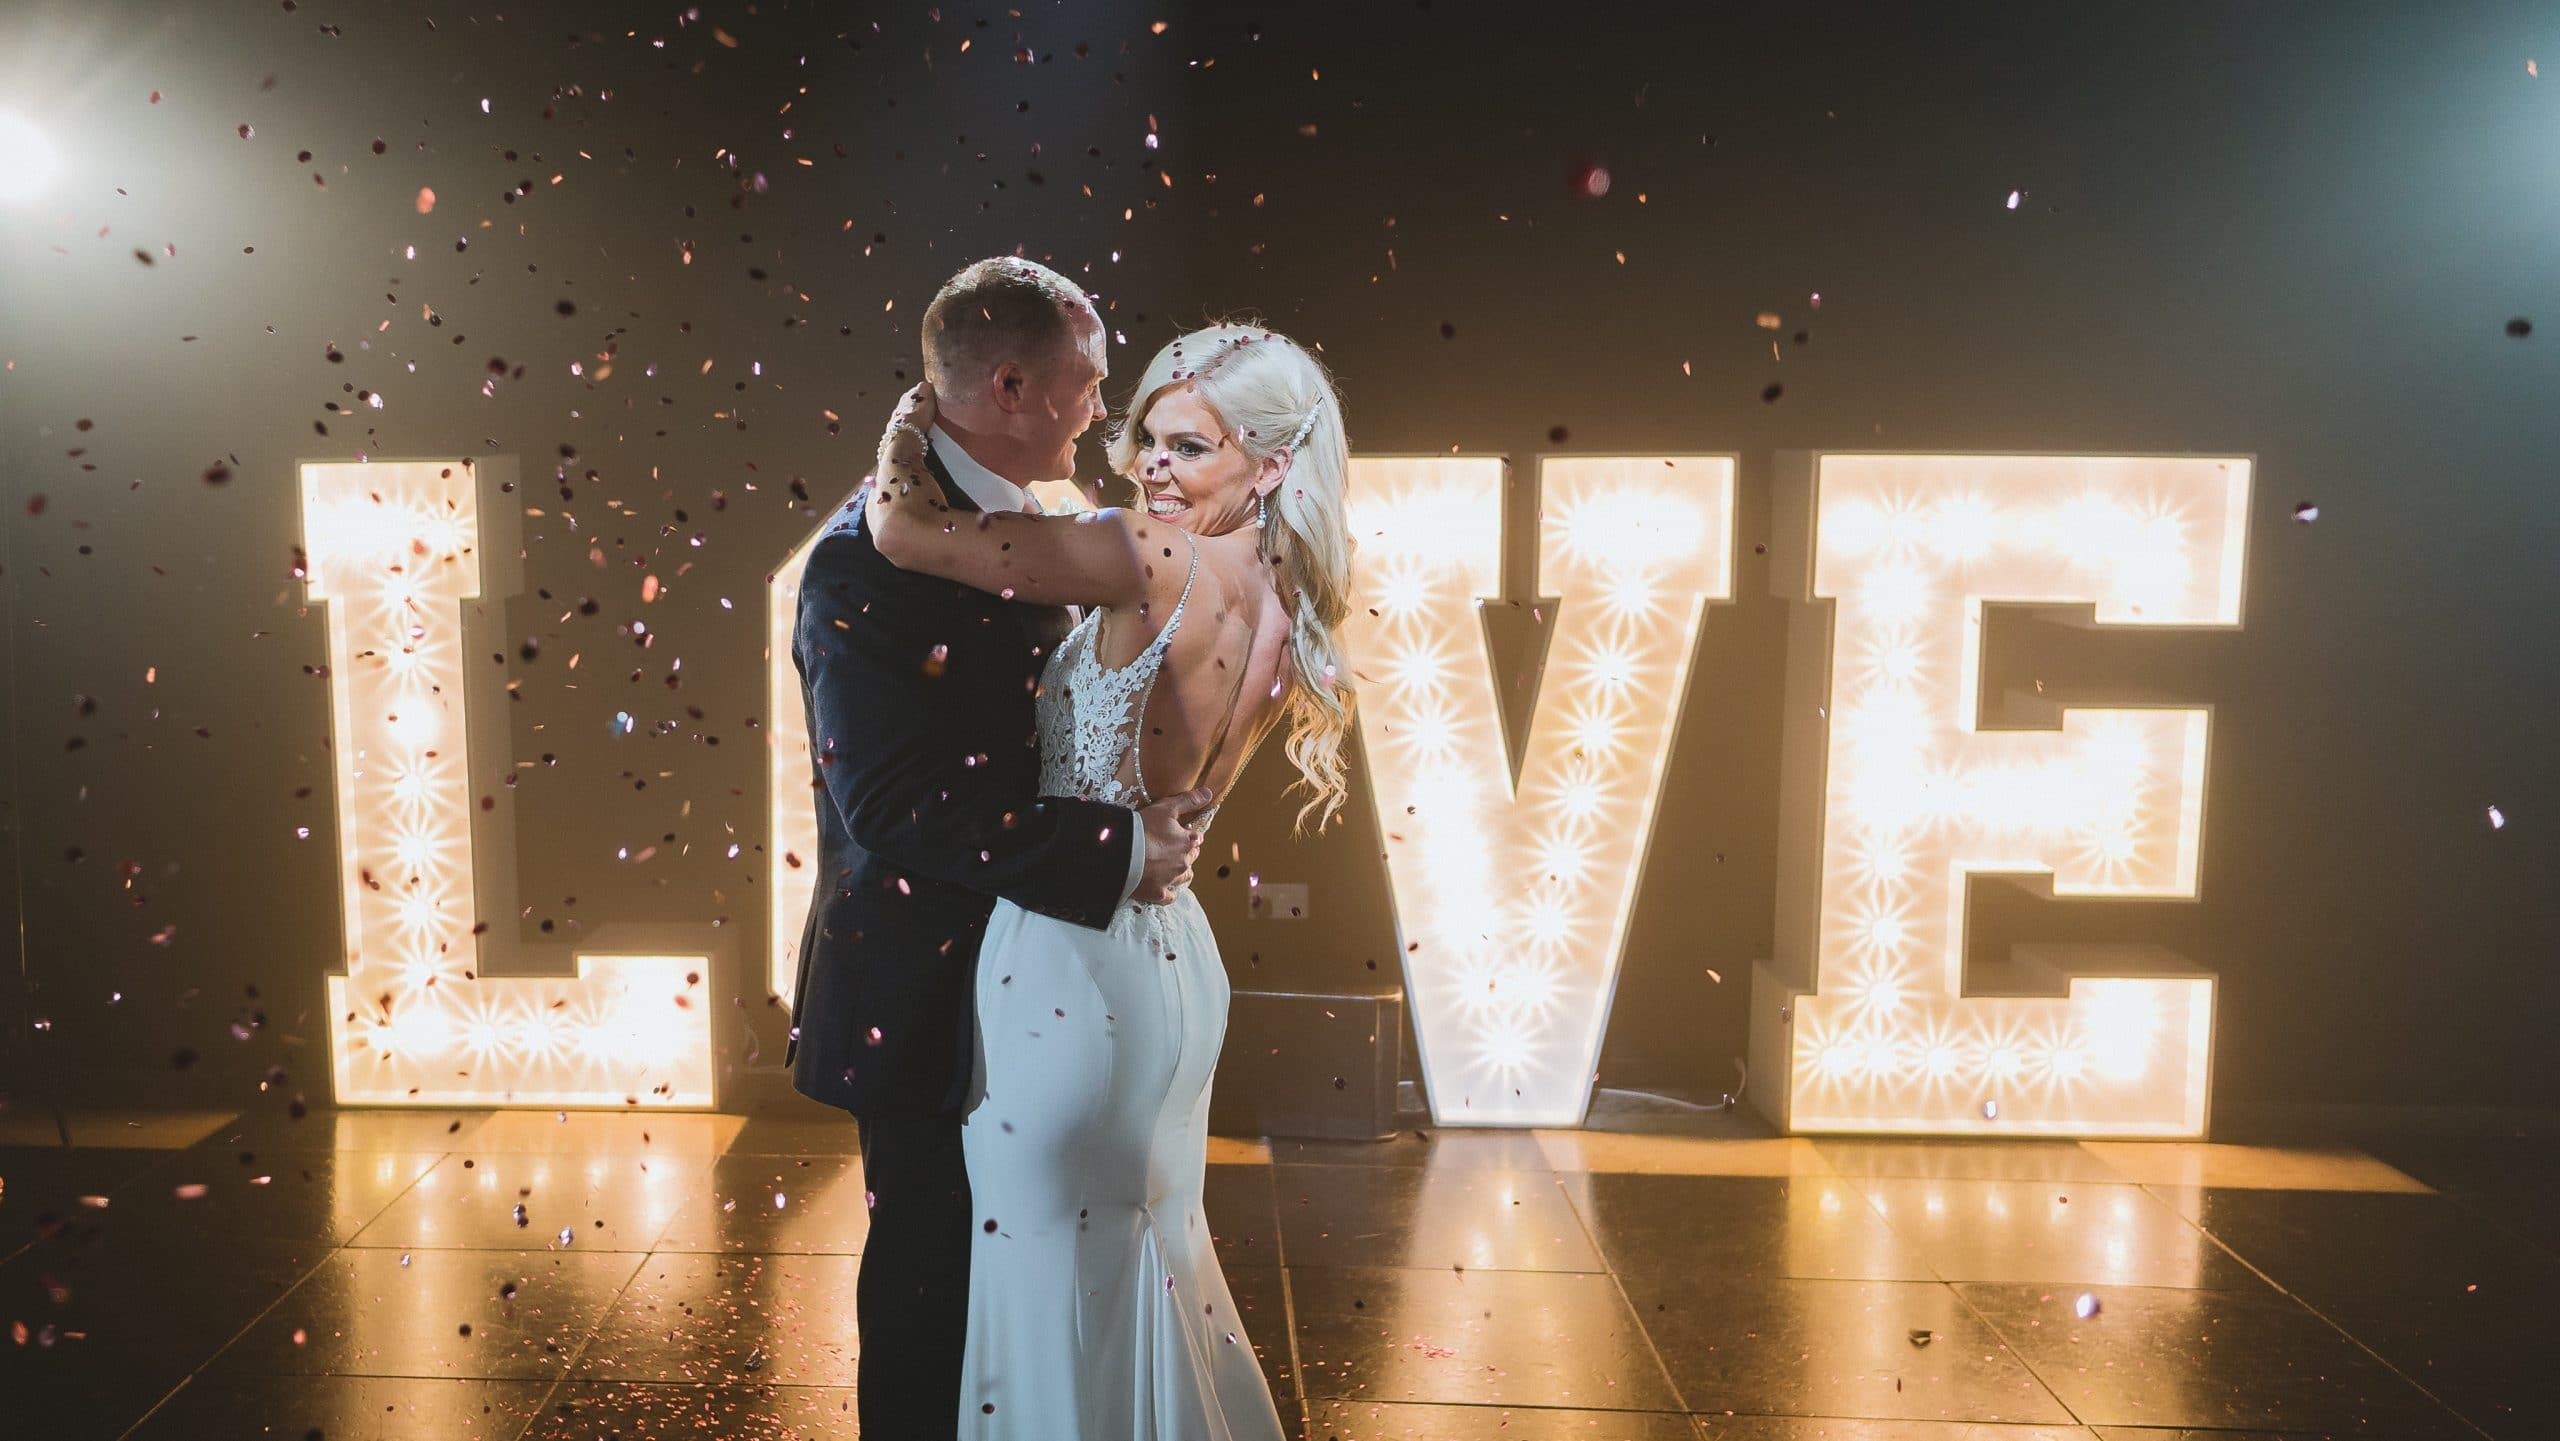 First dance of bride and groom for their wedding photography at Oldwalls & Gower collection with confetti canons